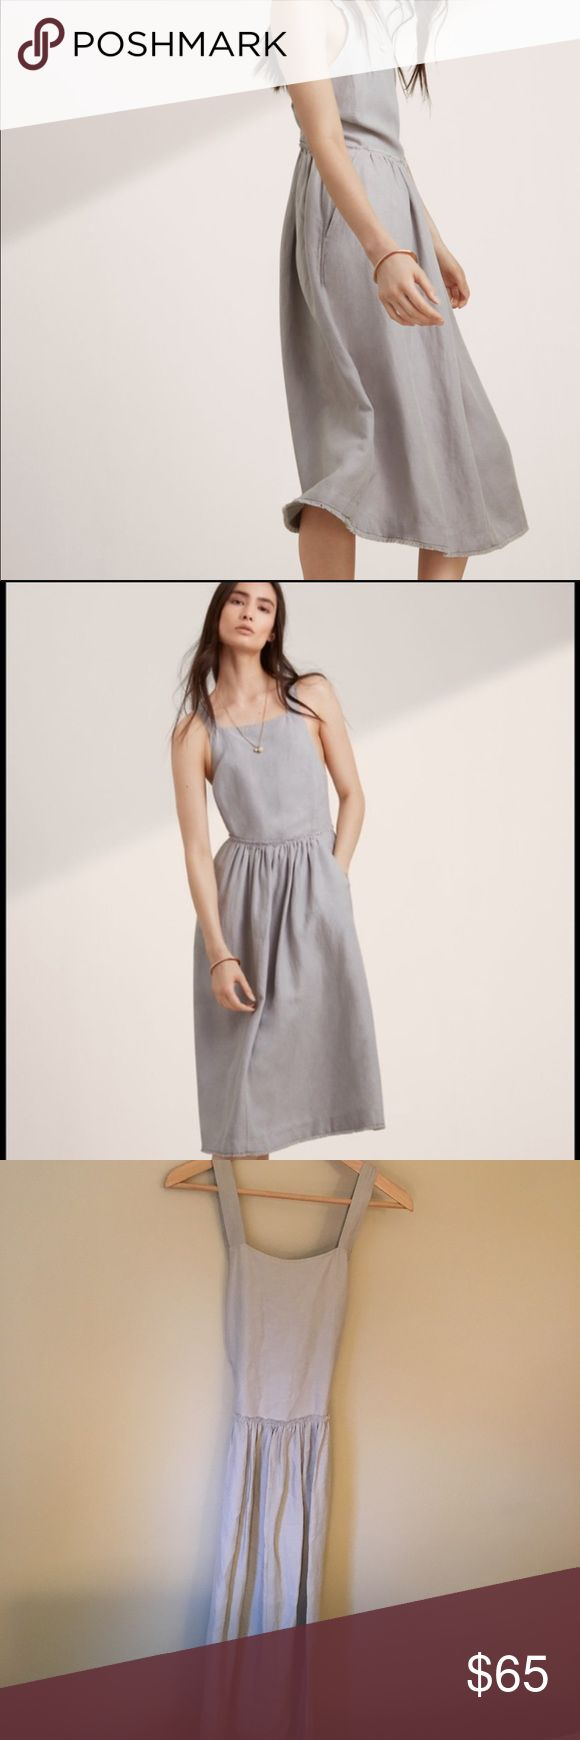 Wilfred Hymne Dress in Ashen linen Wilfred dress in Ashen grey. 63% Lyocell, 37% Linen. Definitely a statement dress. You can wear on it's own, also looks great layered with a turtleneck or long sleeve. Size 6. Lightly worn, fits true. Aritzia Dresses Midi